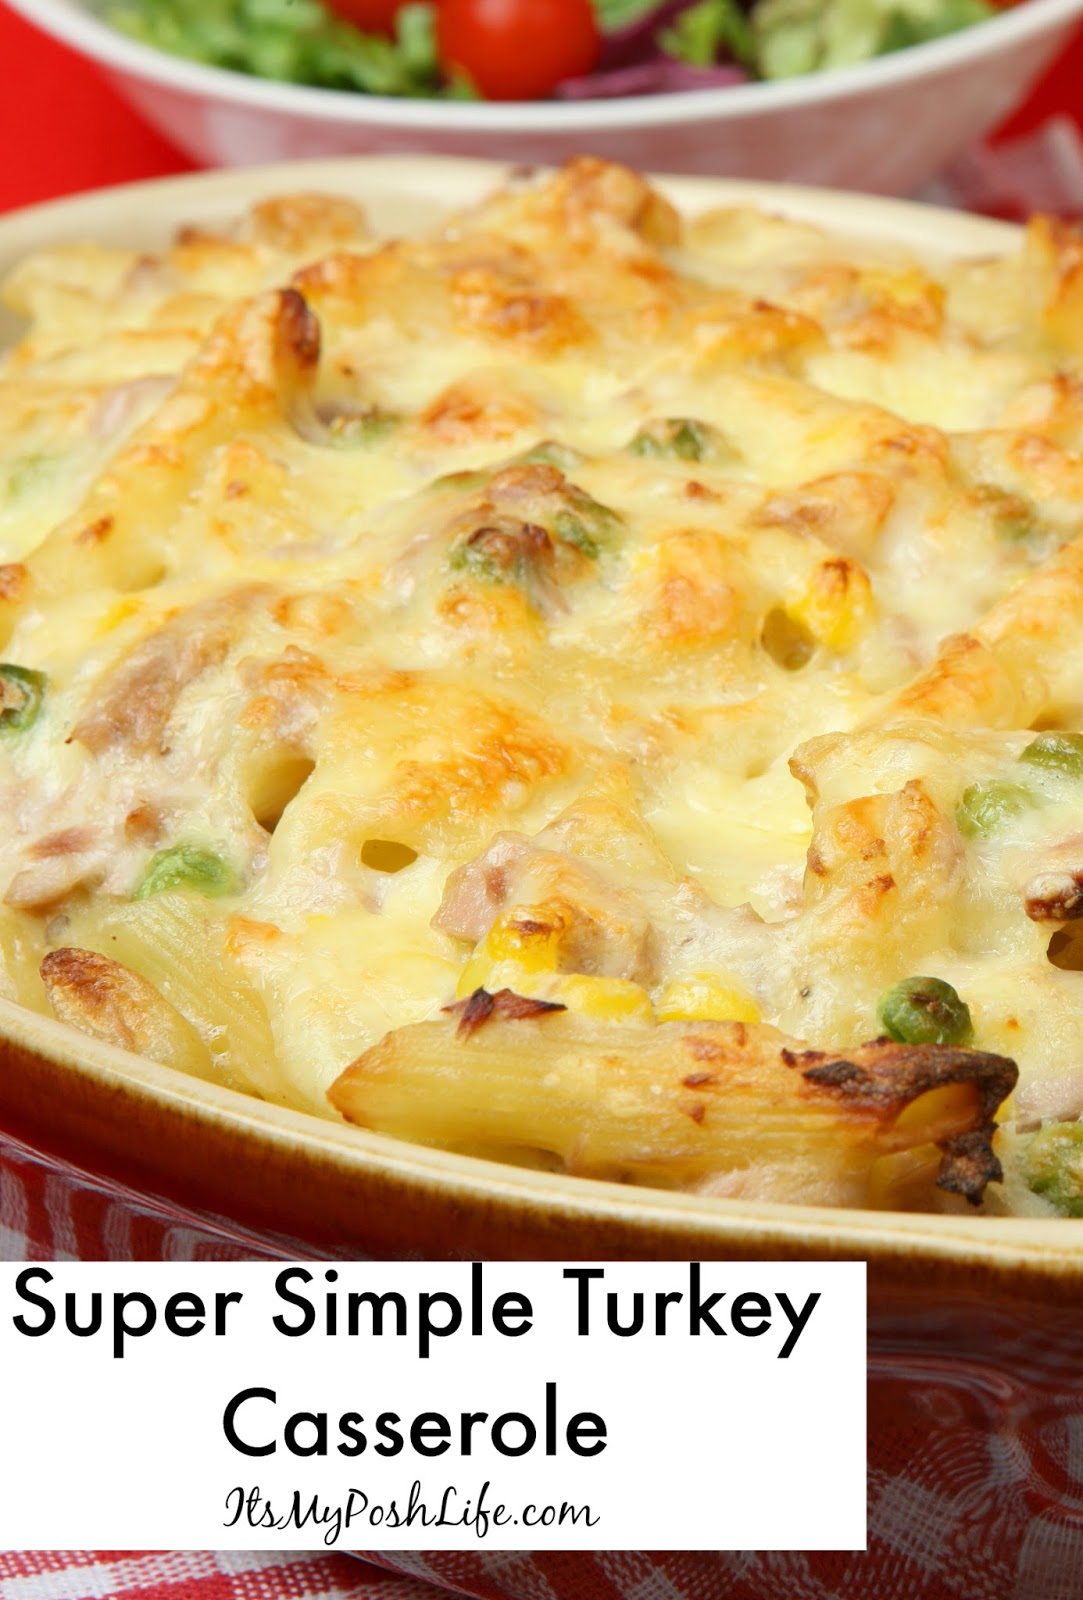 Super Simple Turkey Casserole